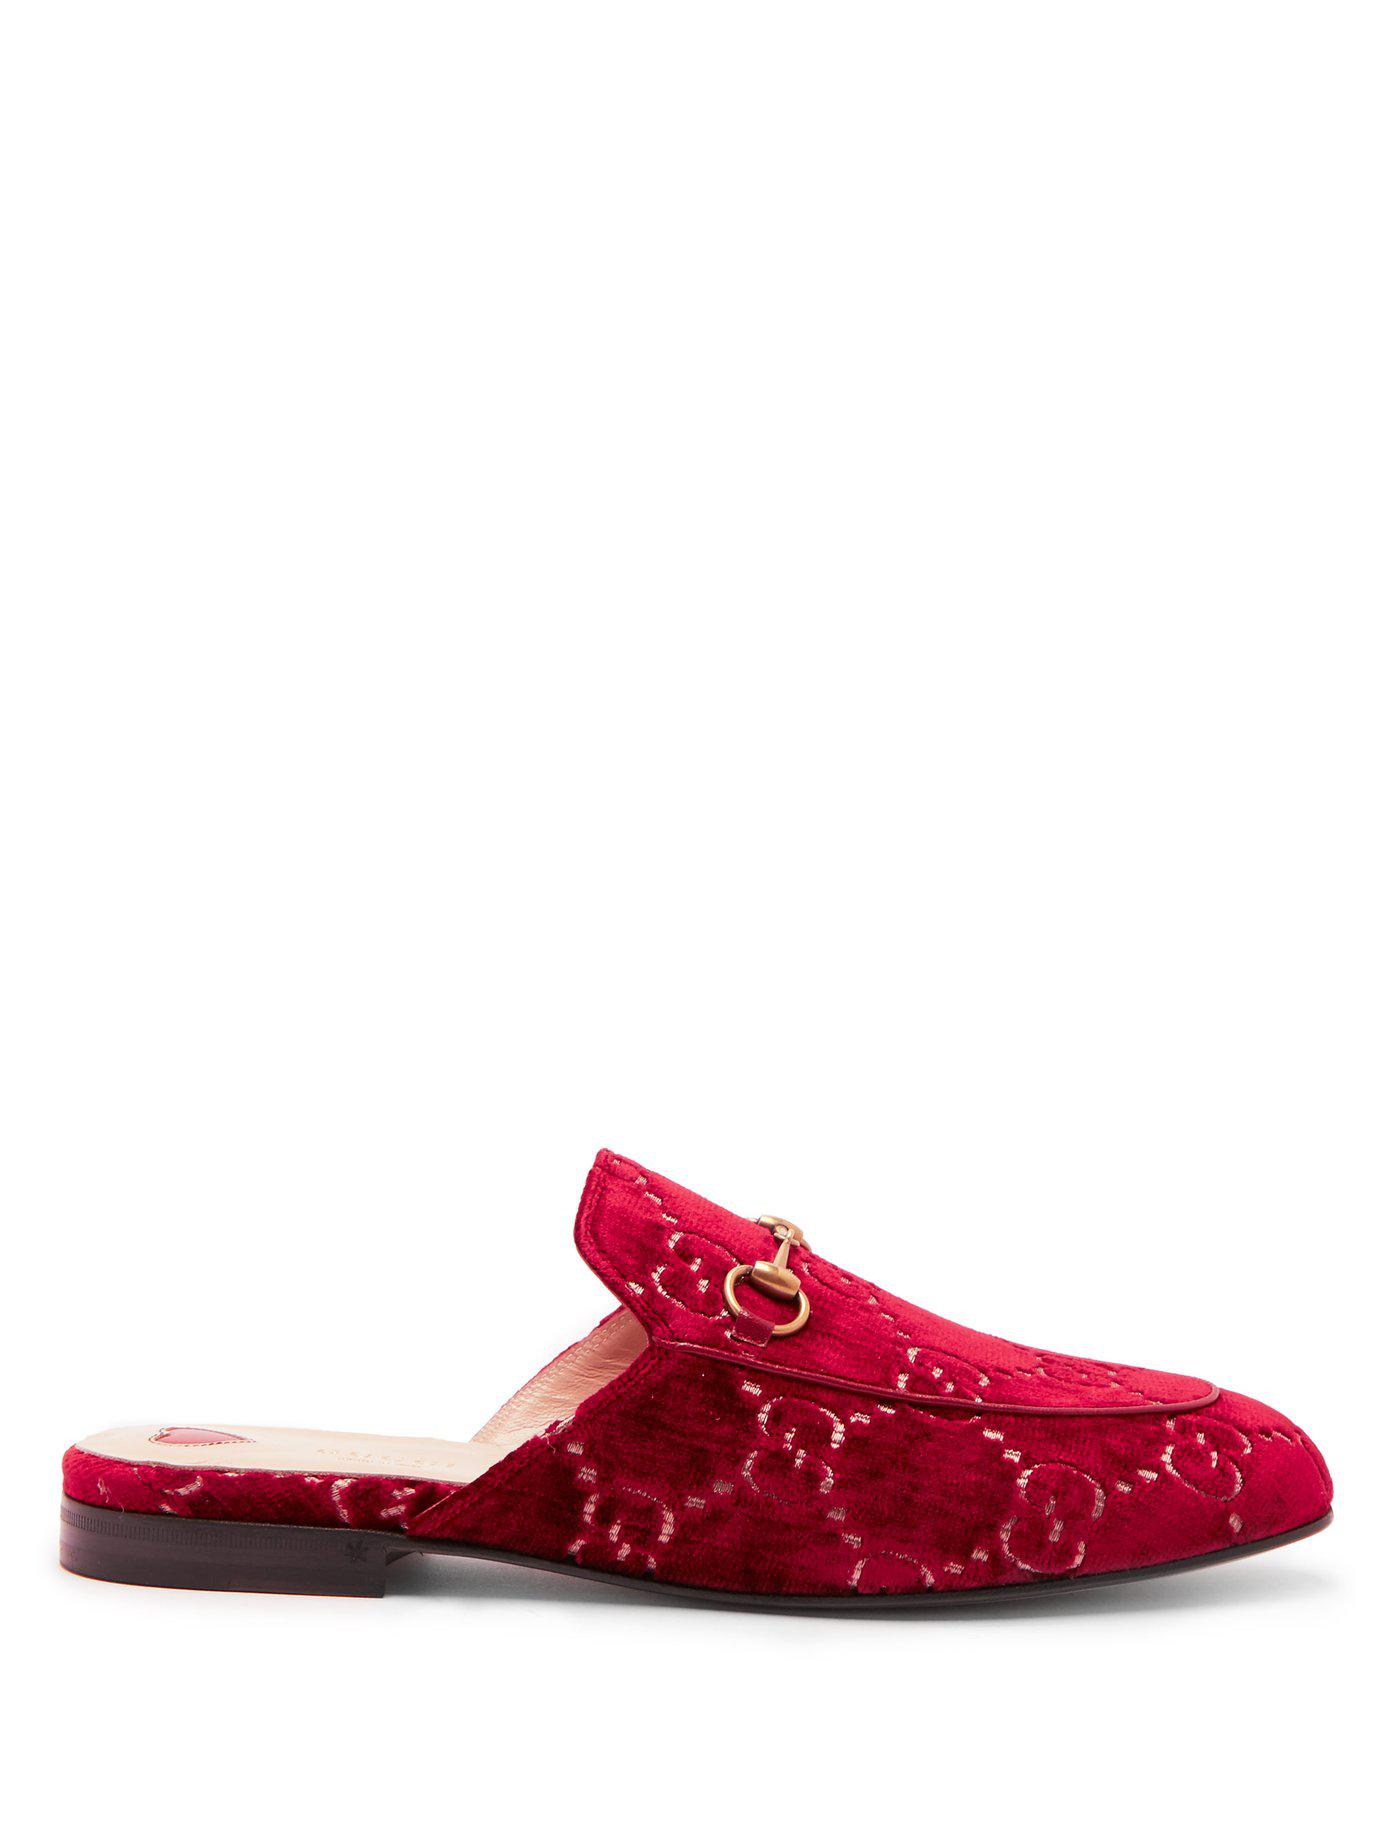 a37fb0c6921 Lyst - Gucci Princetown Velvet Backless Loafers in Red - Save 16%